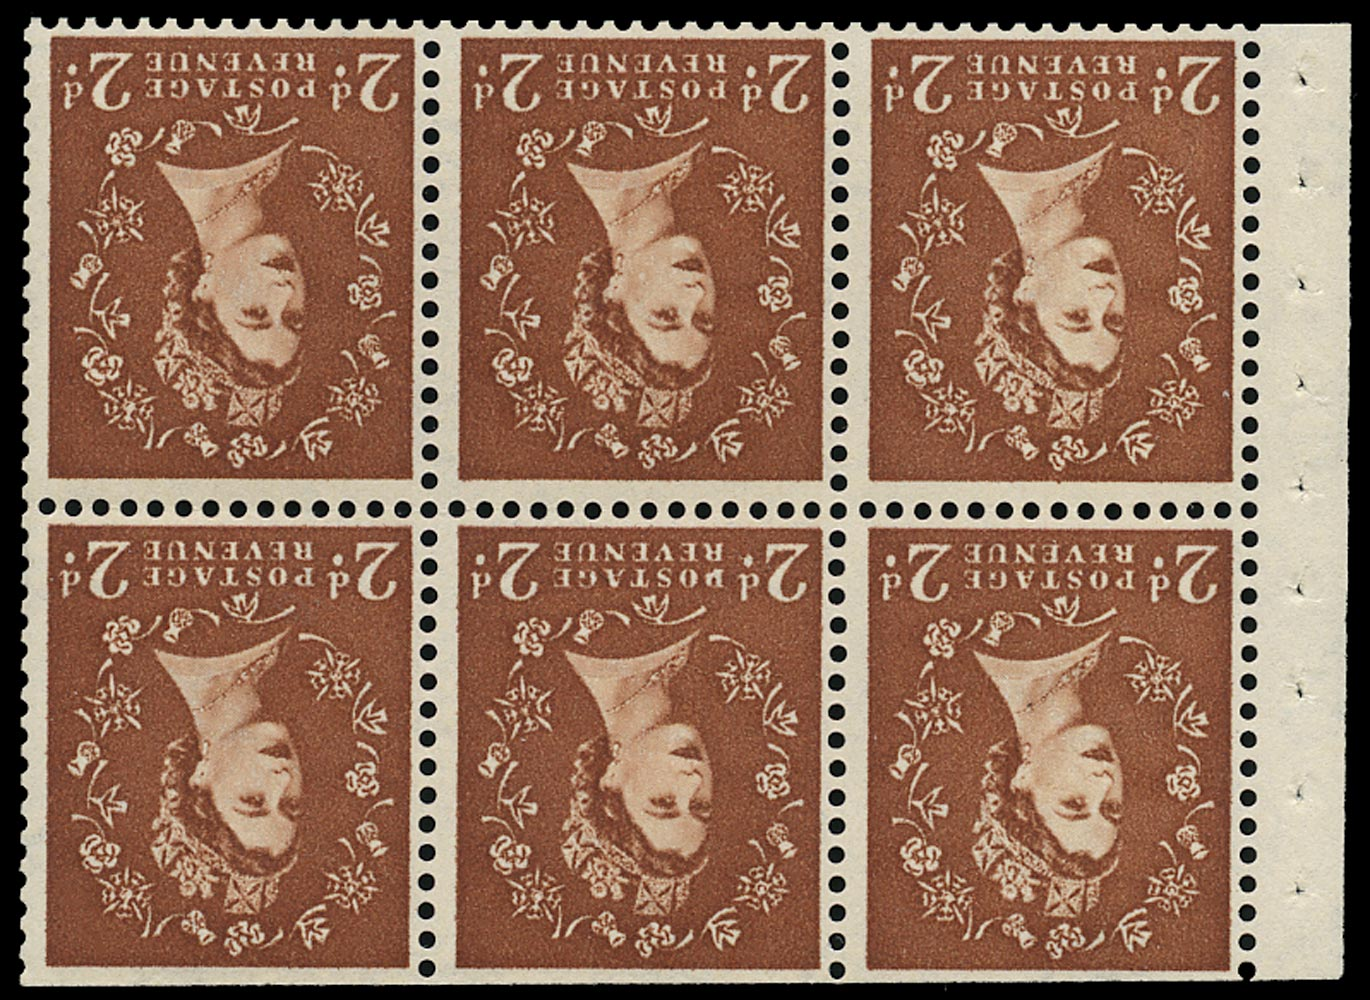 GB 1961  SG573lWi Booklet pane - Wmk. Crowns inverted with 'D for P' variety